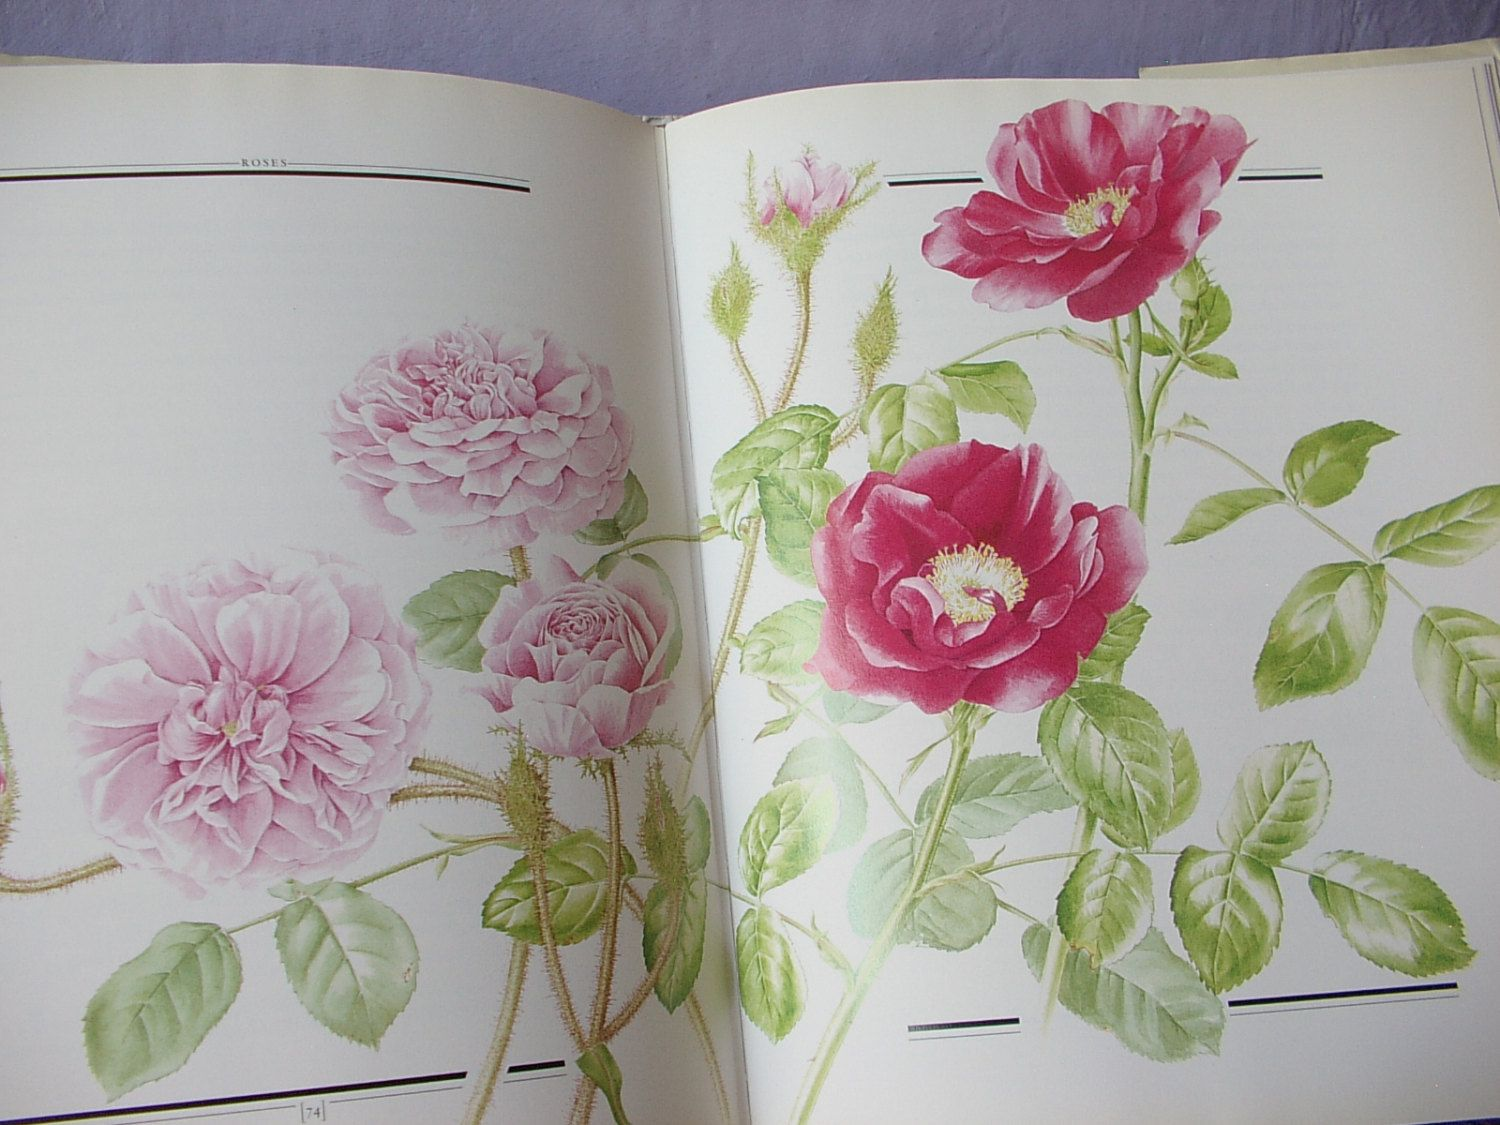 Vintage A Year in a Victorian Garden book by Henry A. Bright, 1989, Illustrated book, Victorian Flower book, English garden, rose book by ShoponSherman on Etsy